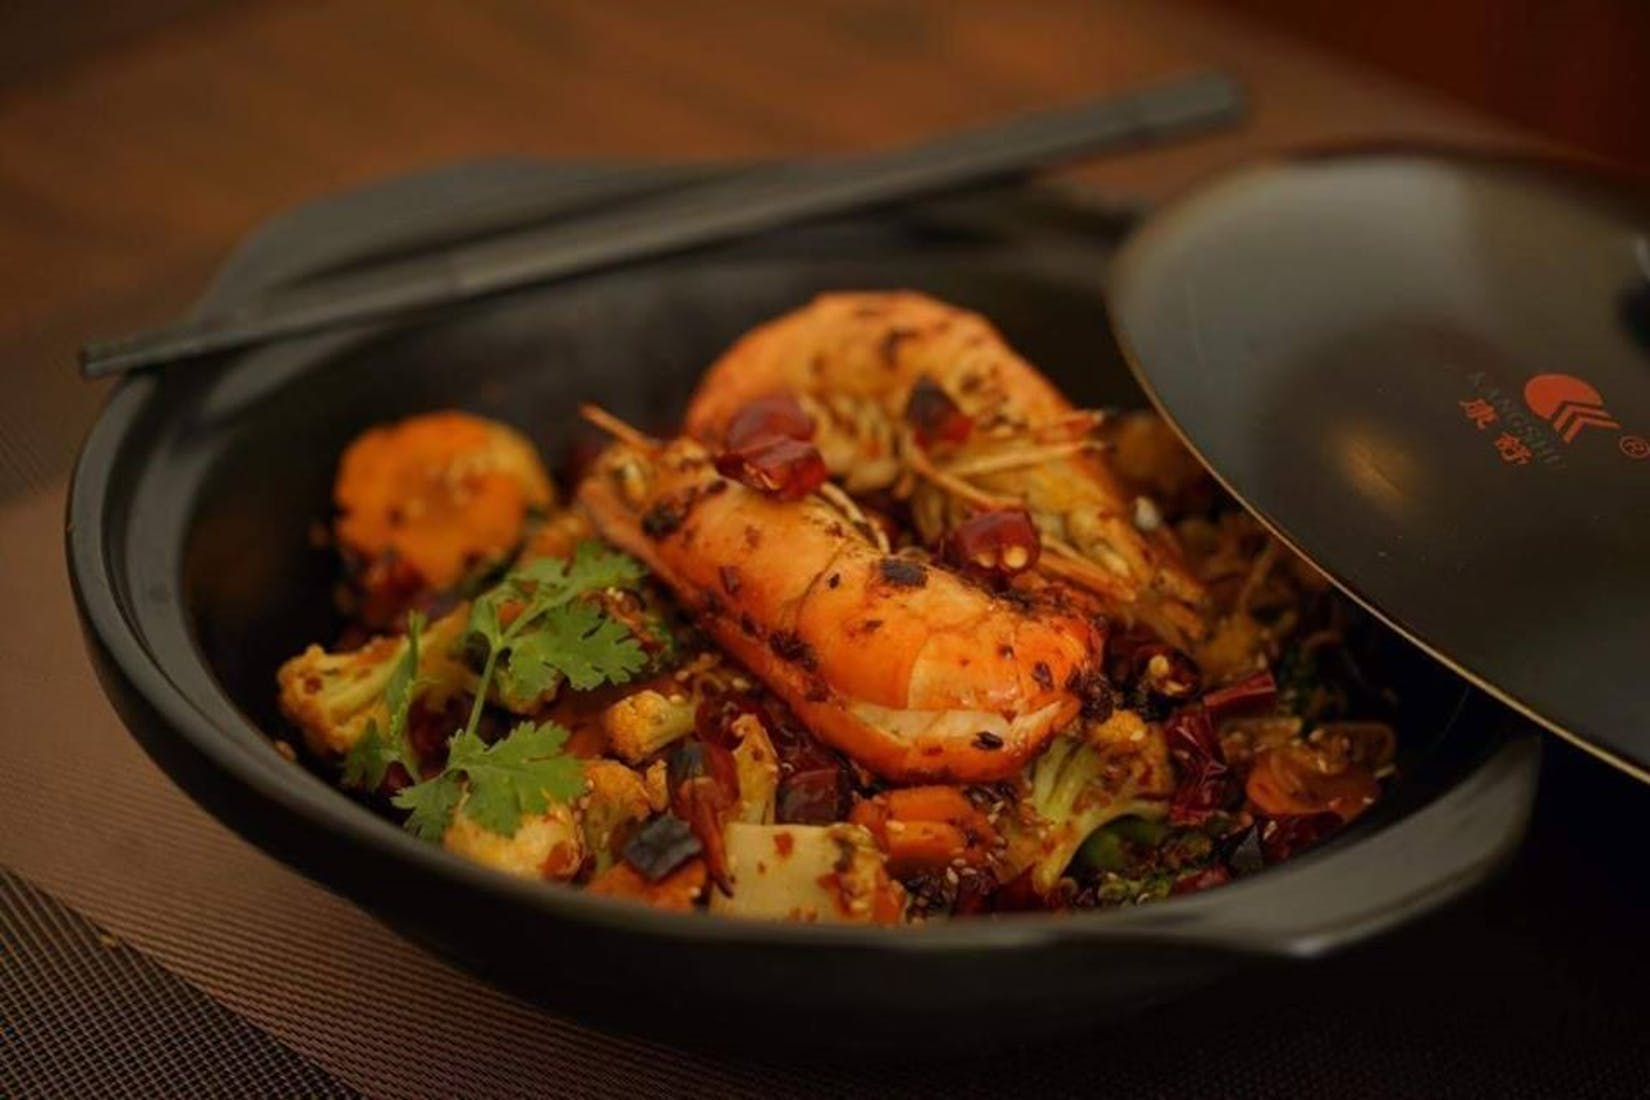 Paragon Spicy Food Restaurant | yathar